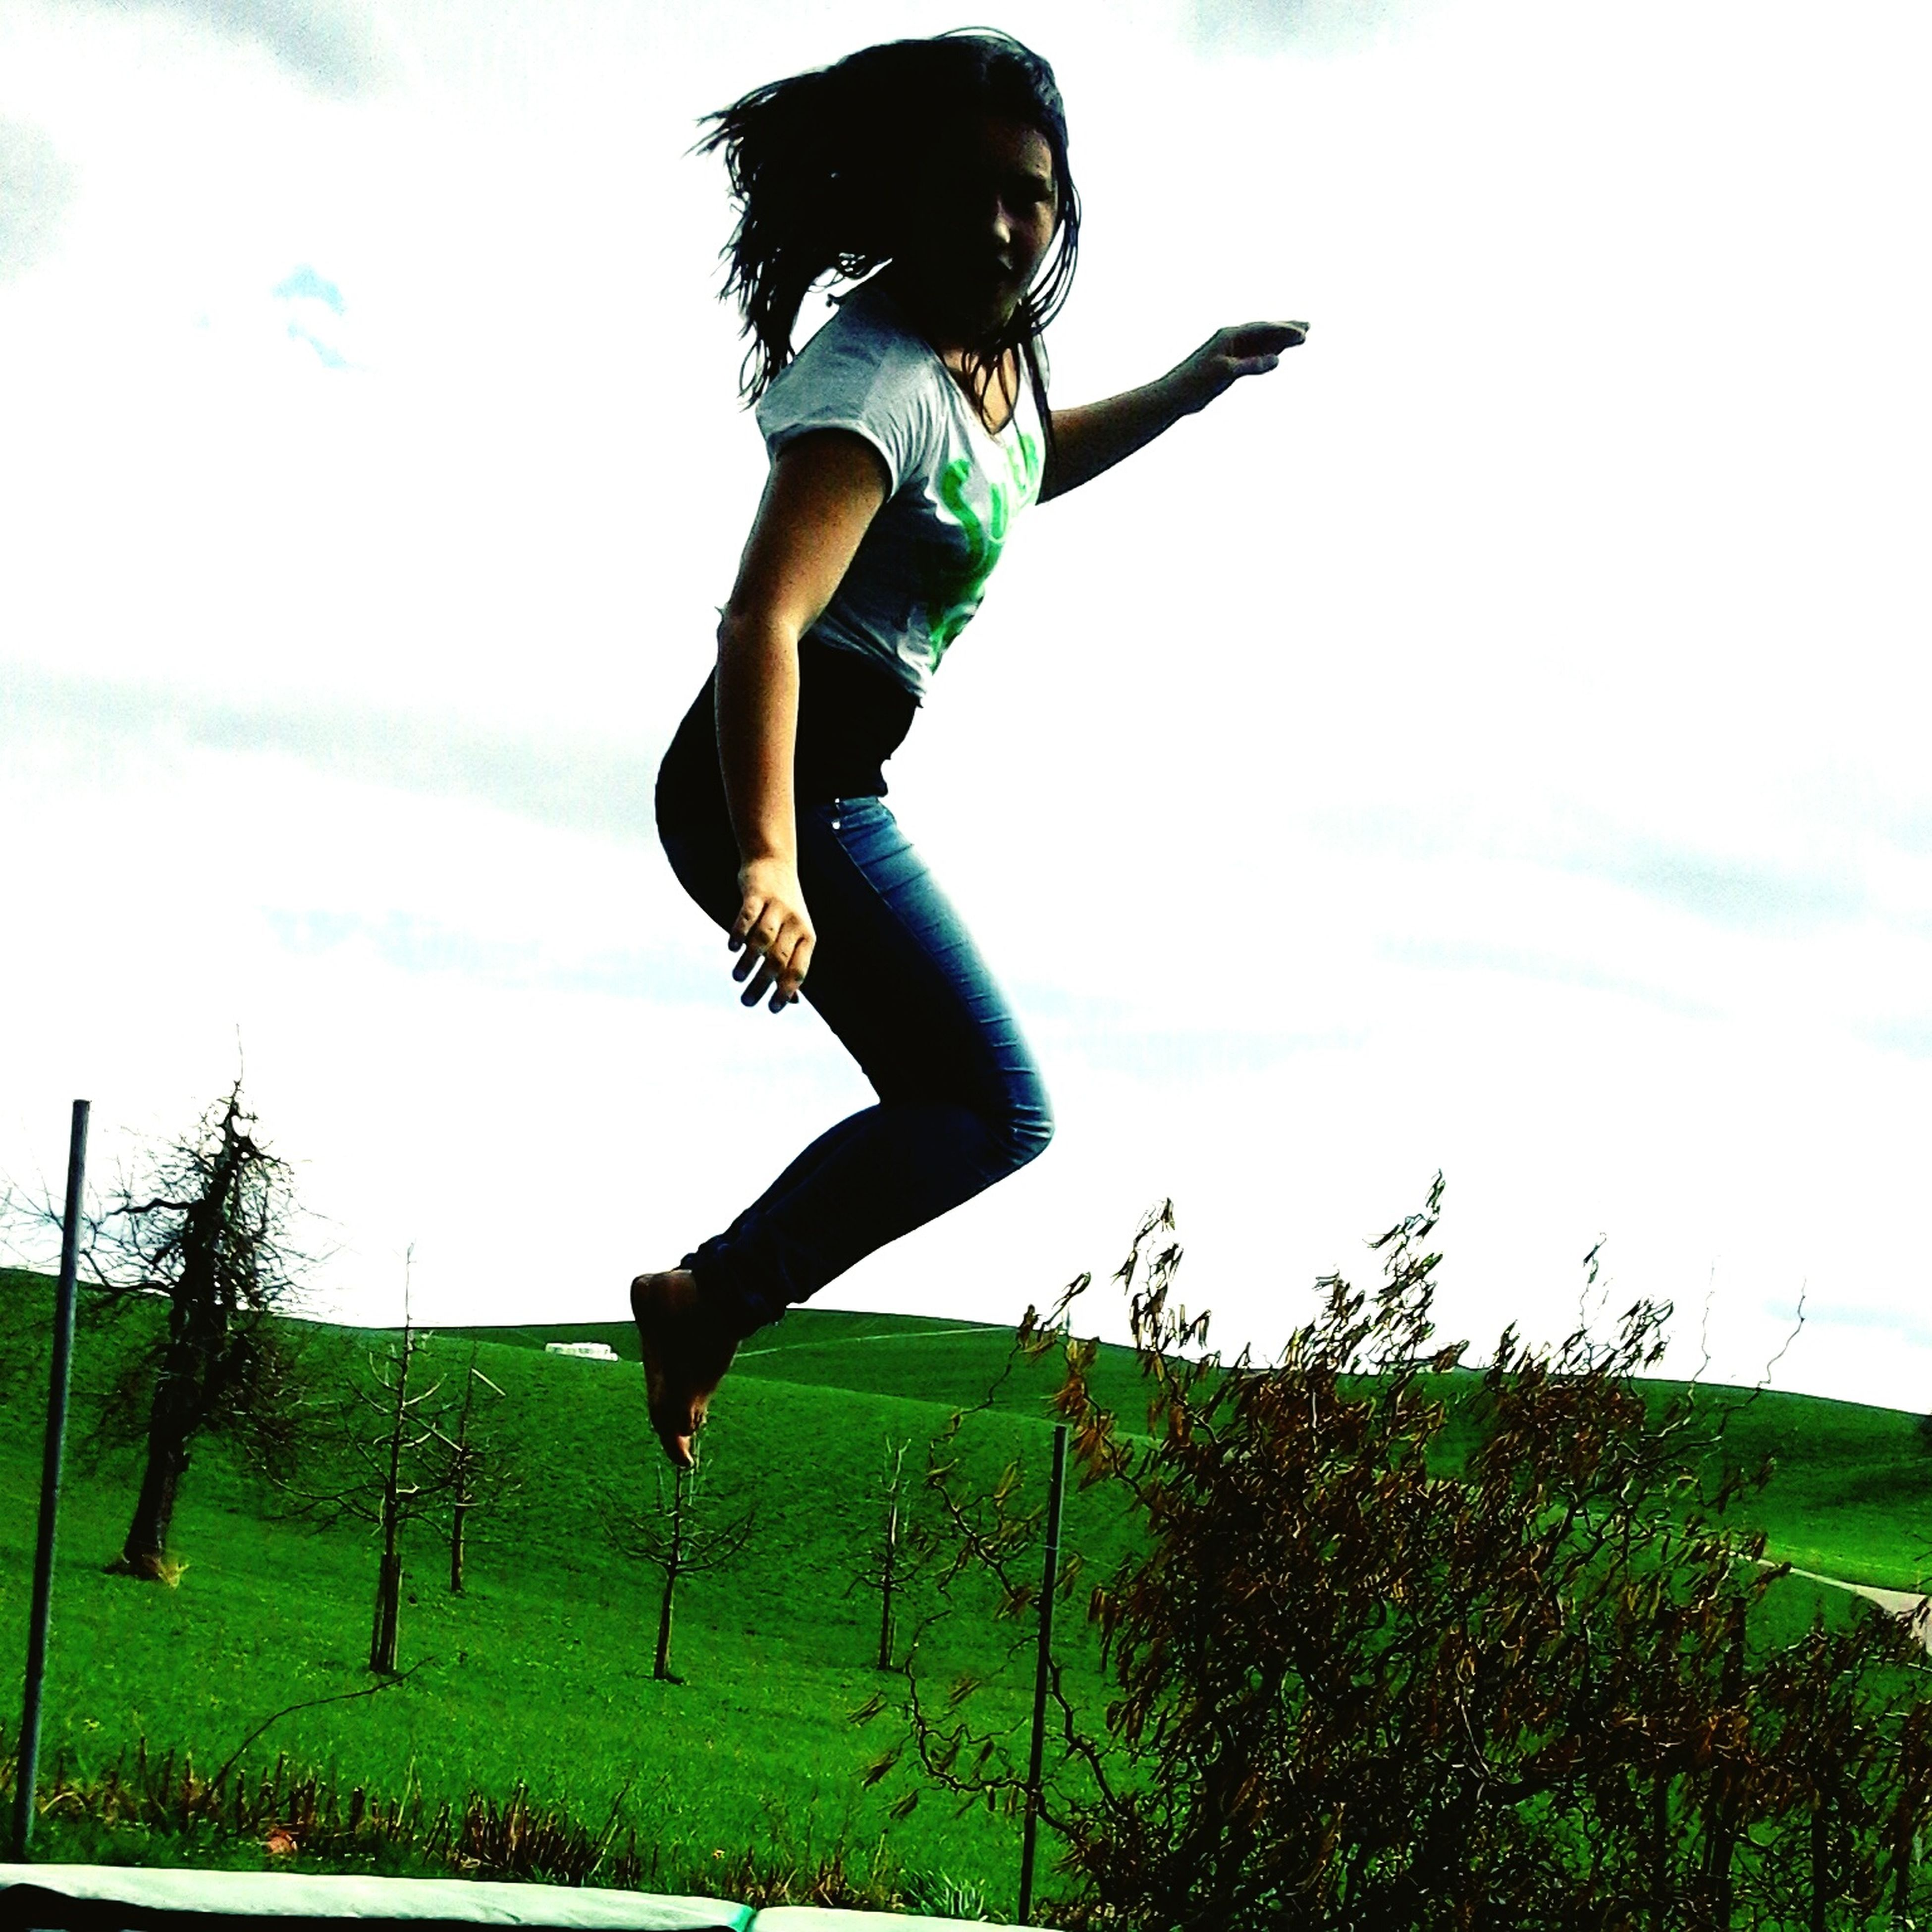 full length, grass, mid-air, lifestyles, leisure activity, jumping, arms outstretched, sky, casual clothing, freedom, field, enjoyment, fun, grassy, arms raised, vitality, carefree, young adult